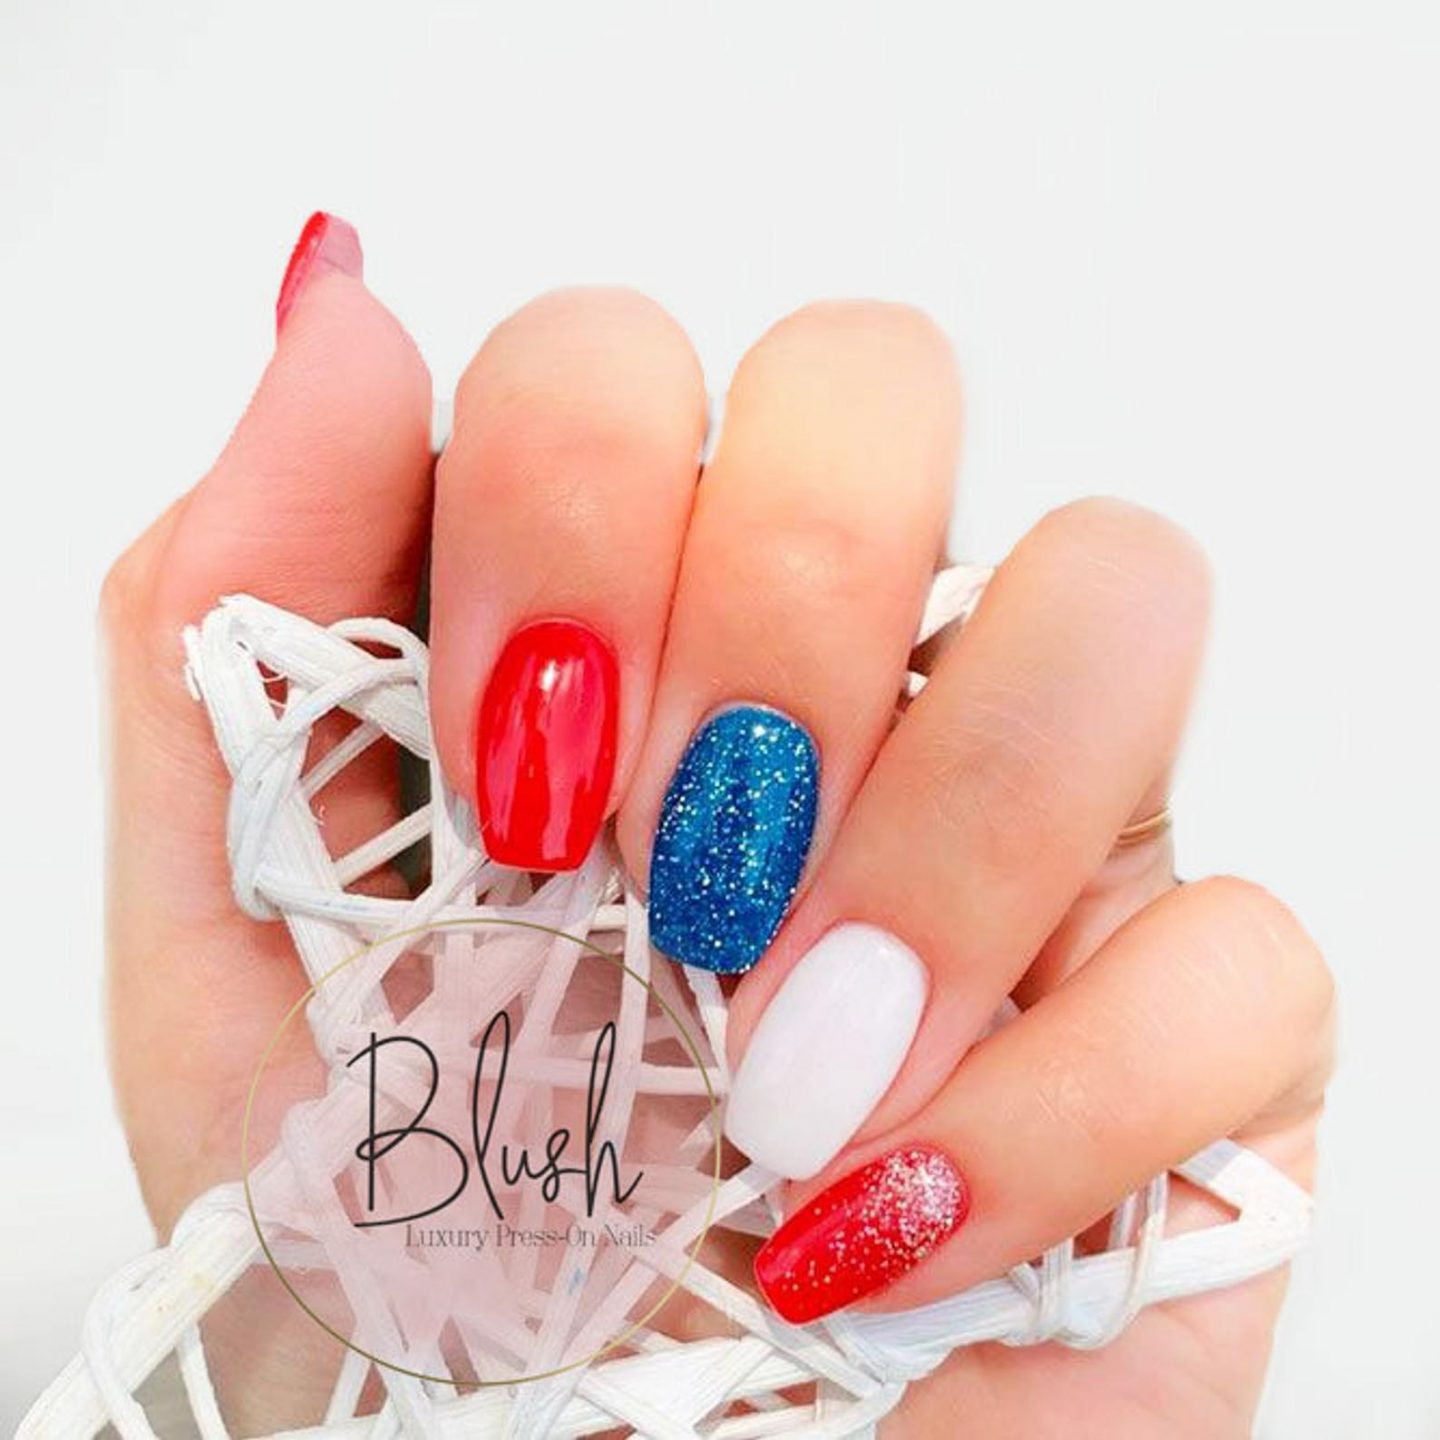 Red, blue and white press on nails for Independence Day